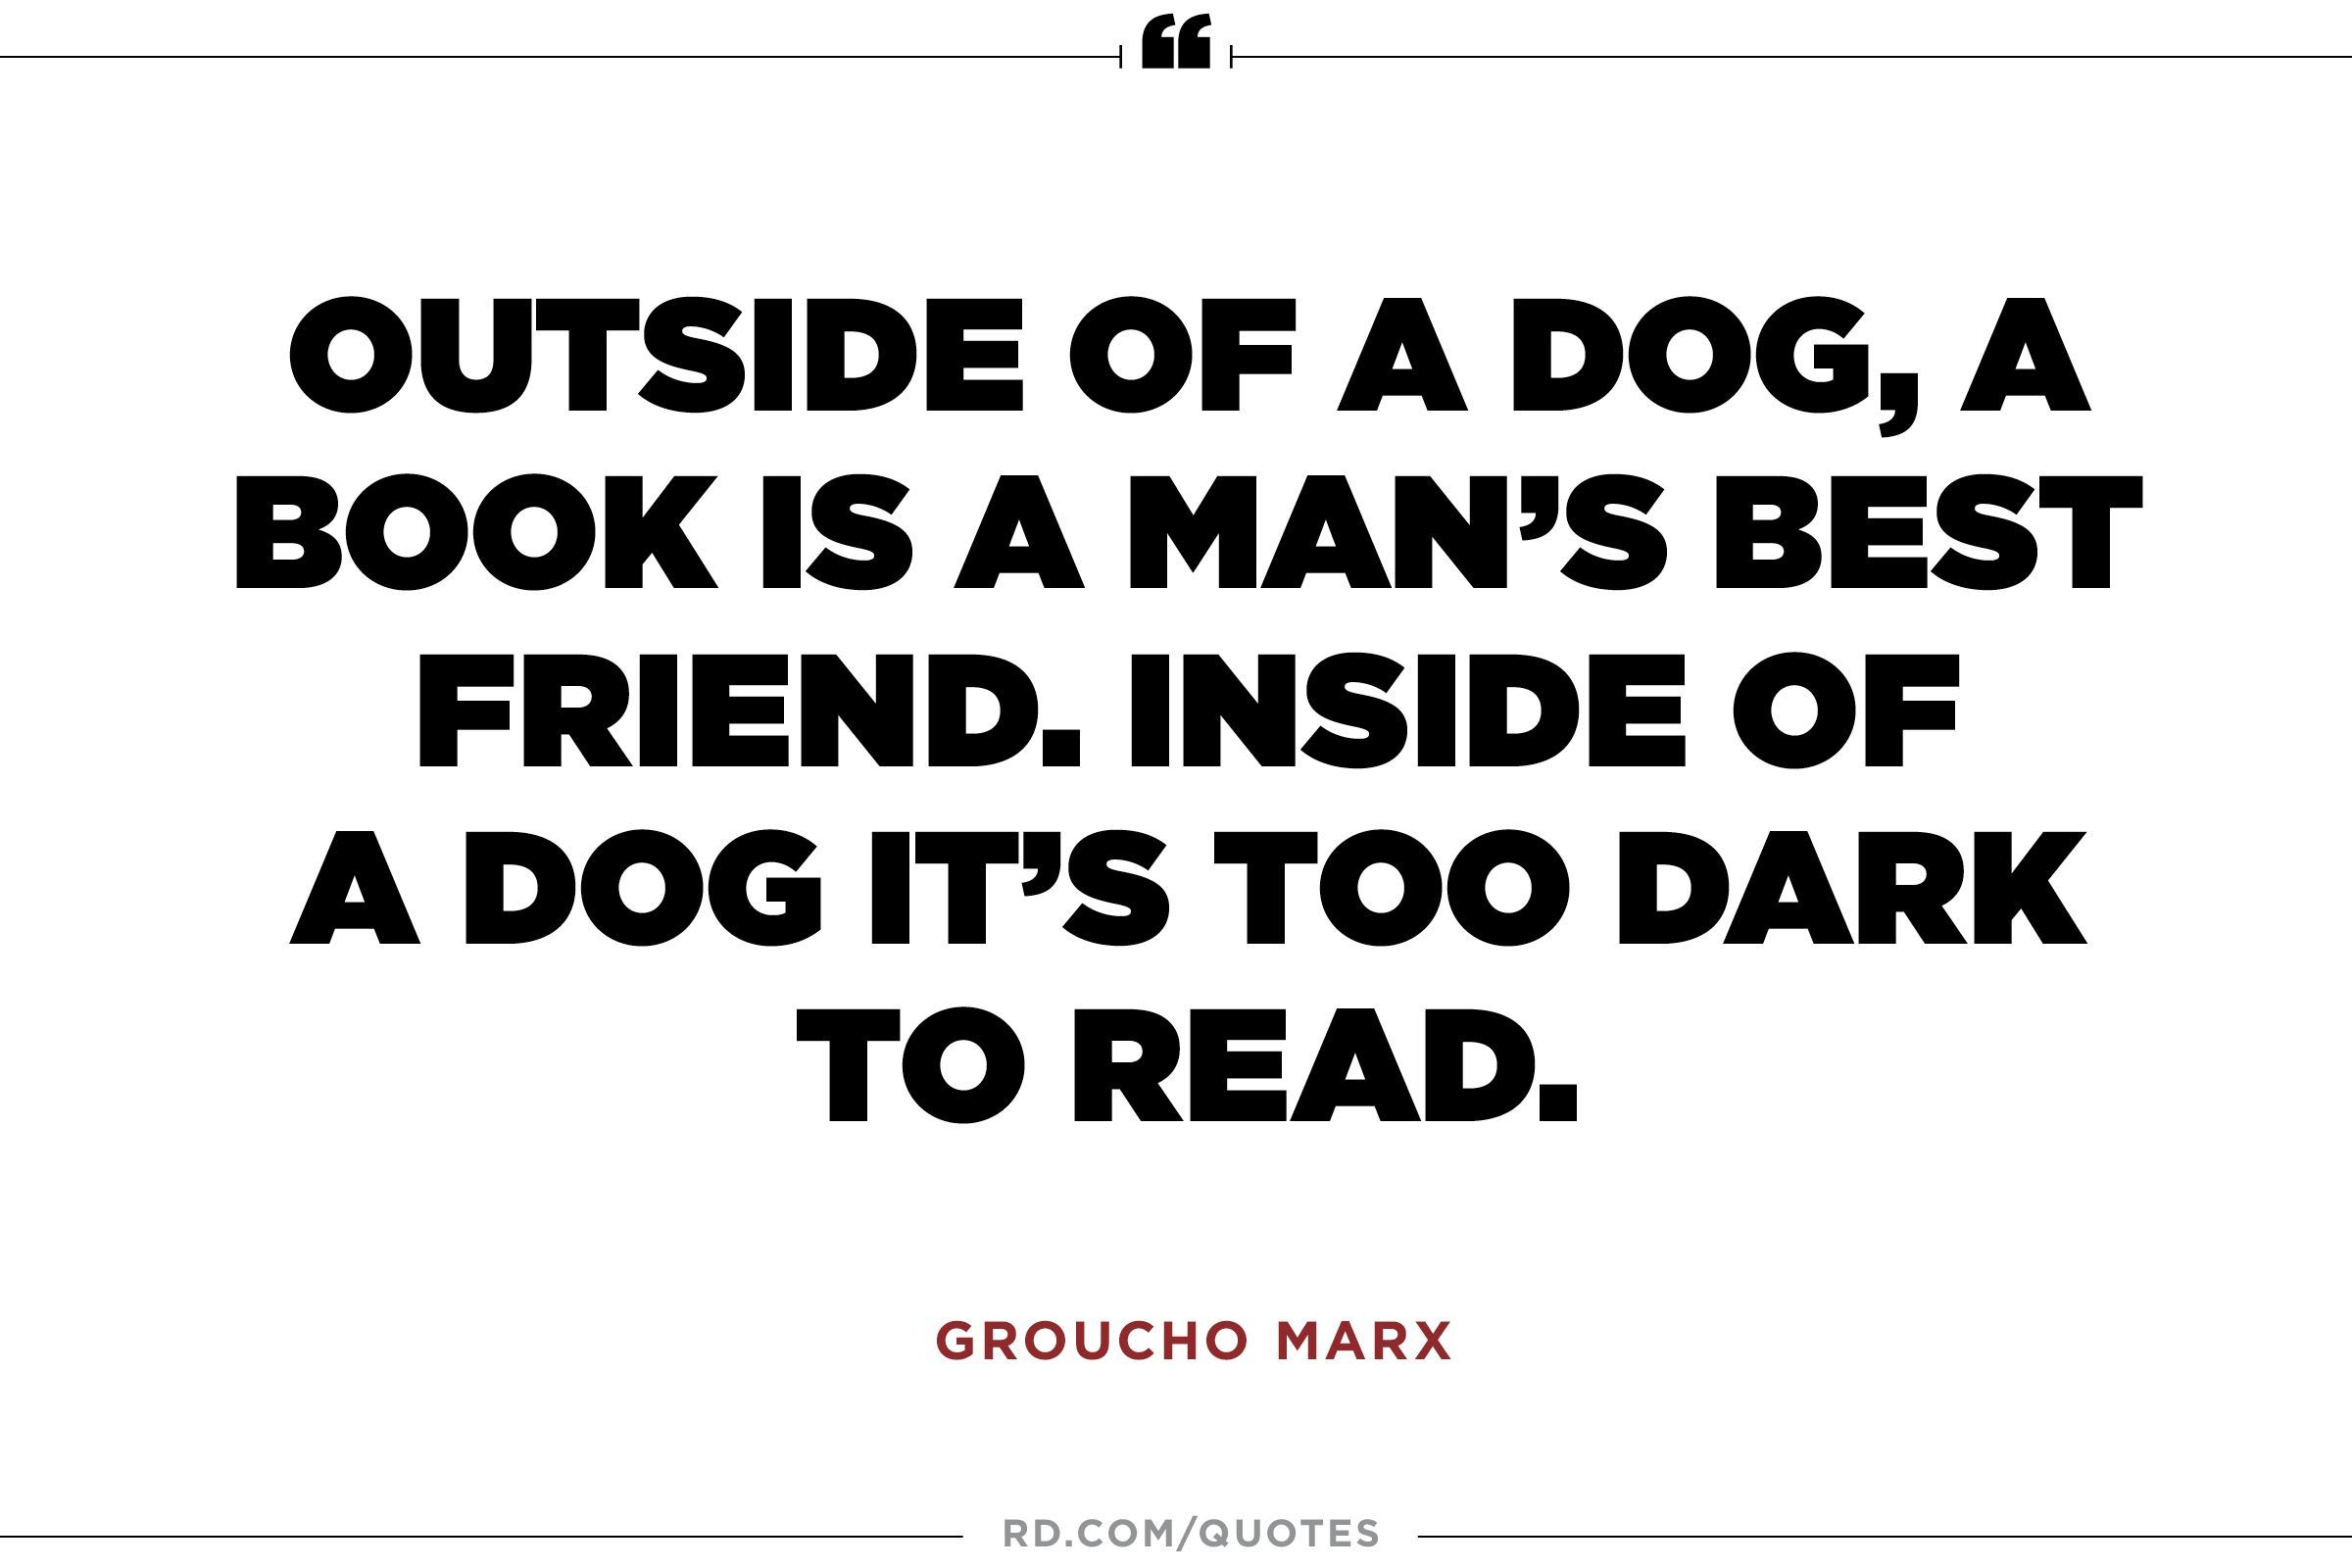 12 Wise and Witty Groucho Marx Sayings That Basically Say